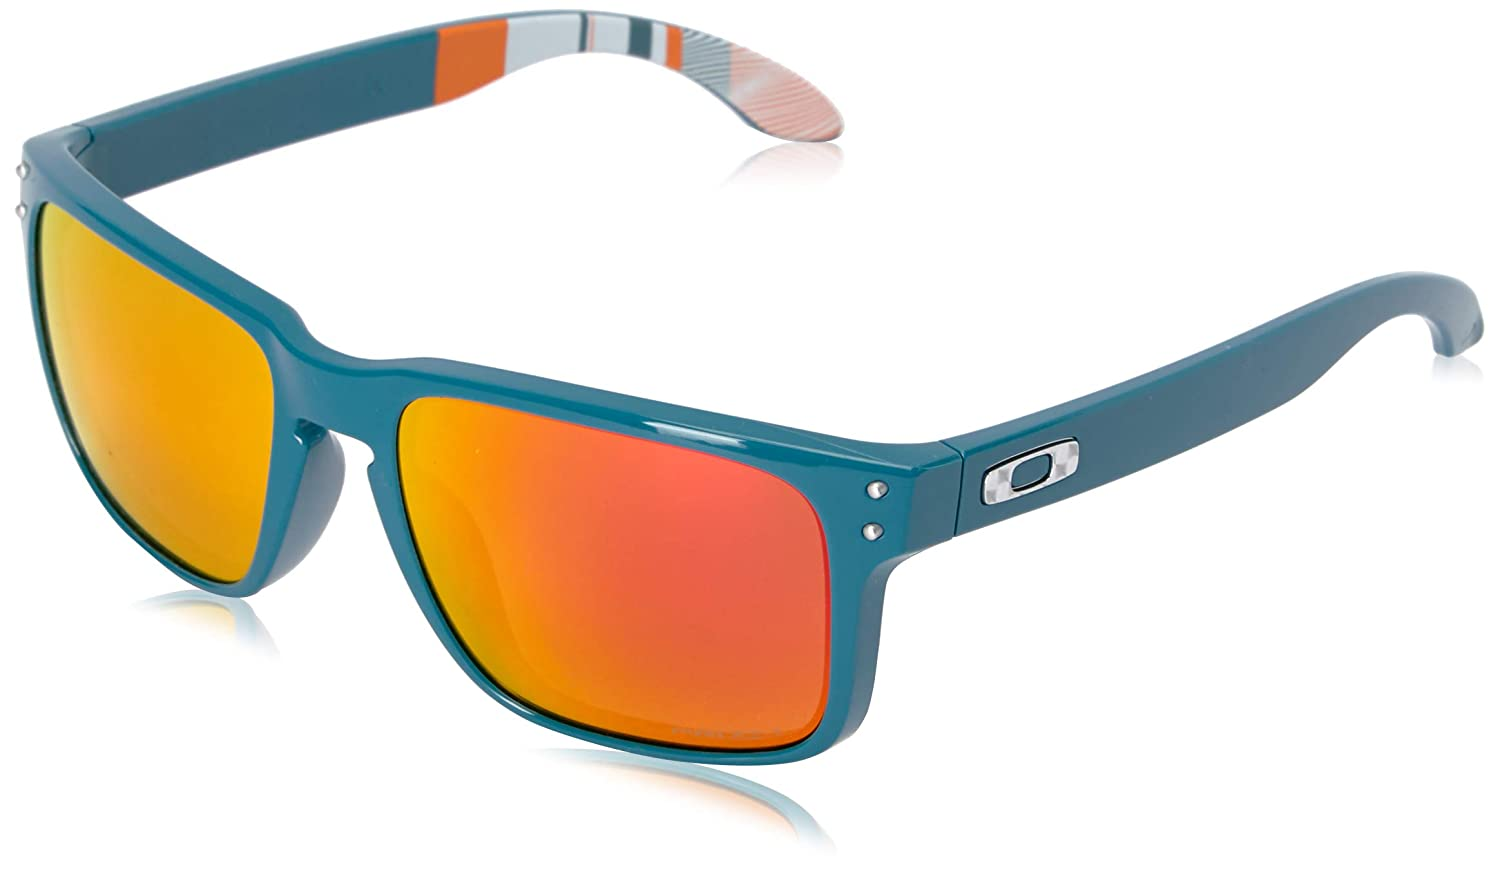 bda1f64709a57 Amazon.com  Oakley Men s Holbrook Non-Polarized Iridium Square Sunglasses,  Aero Baslam, 57.0 mm  Clothing